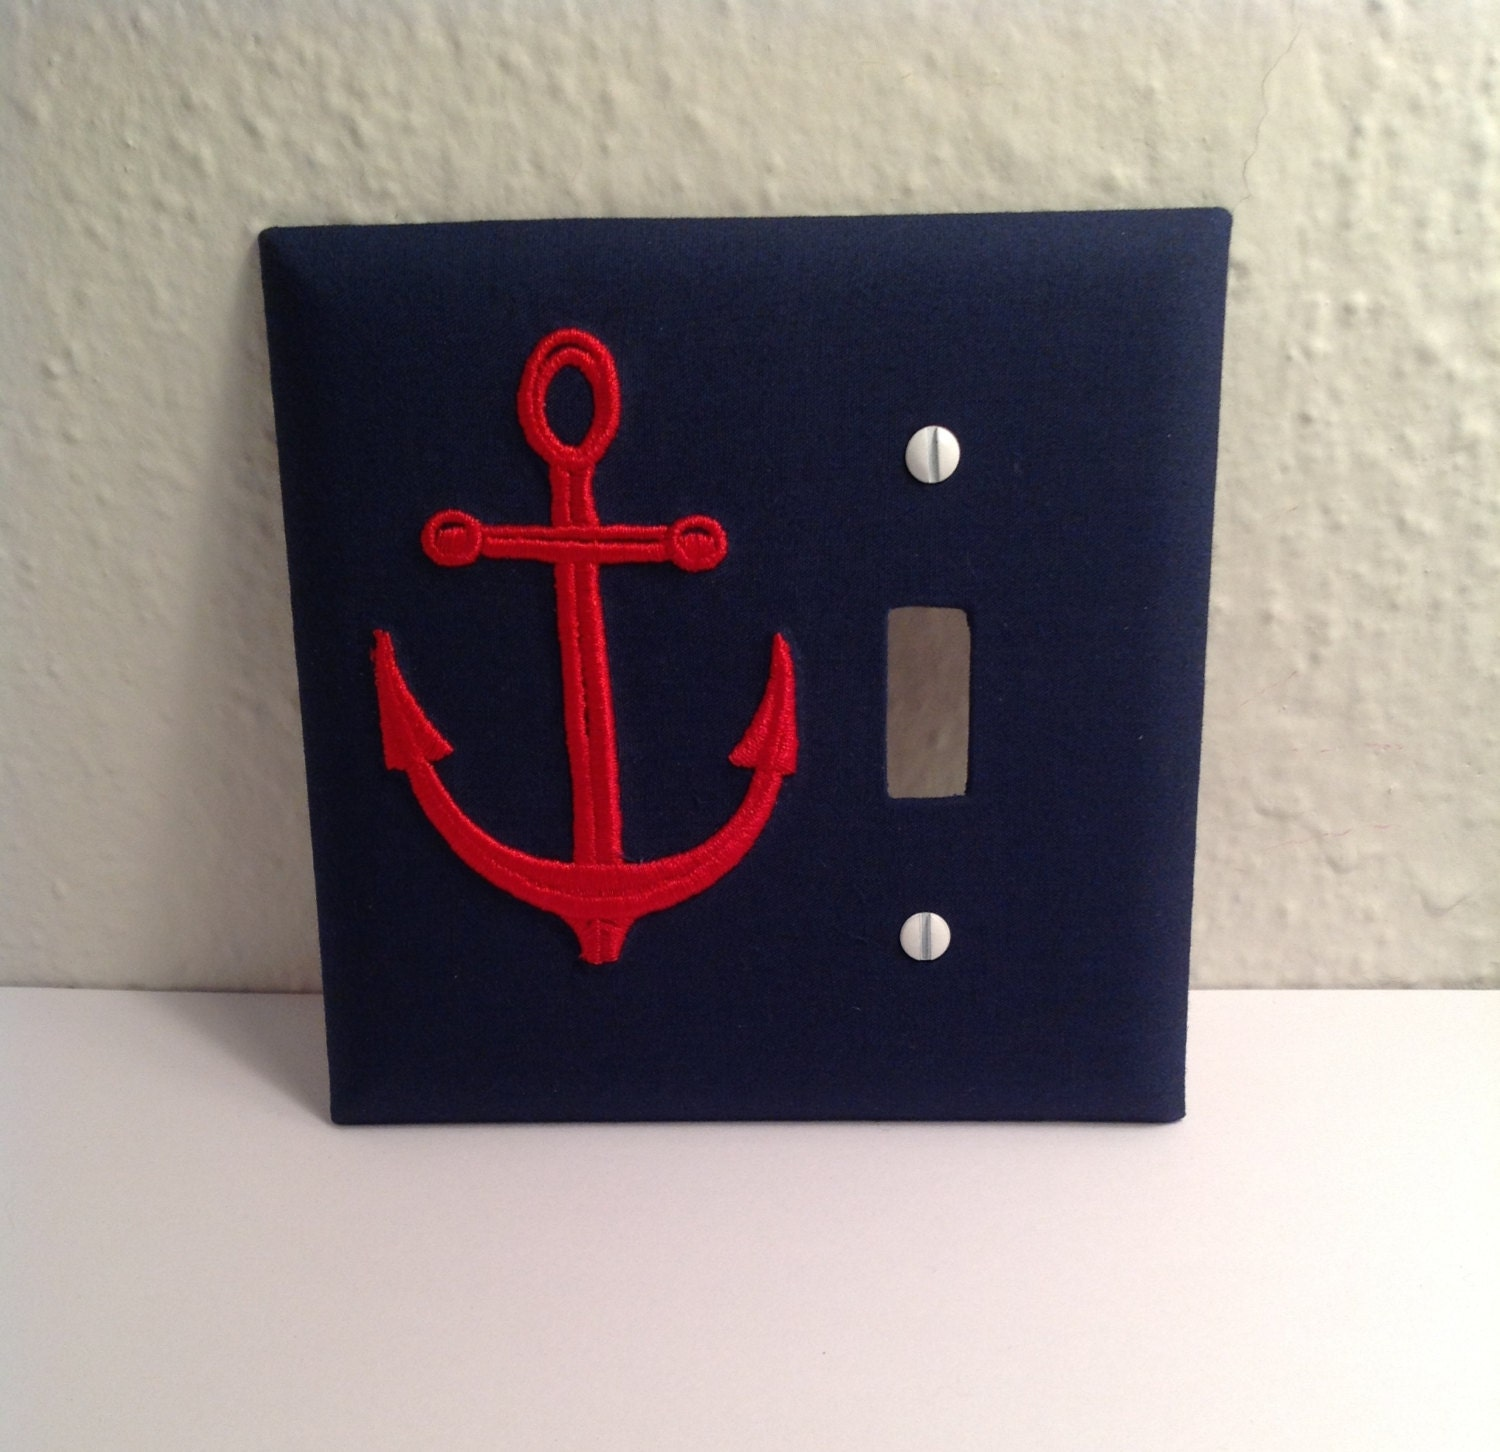 Light Switch Plate Cover: Nautical Anchor Light Switch Cover Plate Navy Blue Fabric